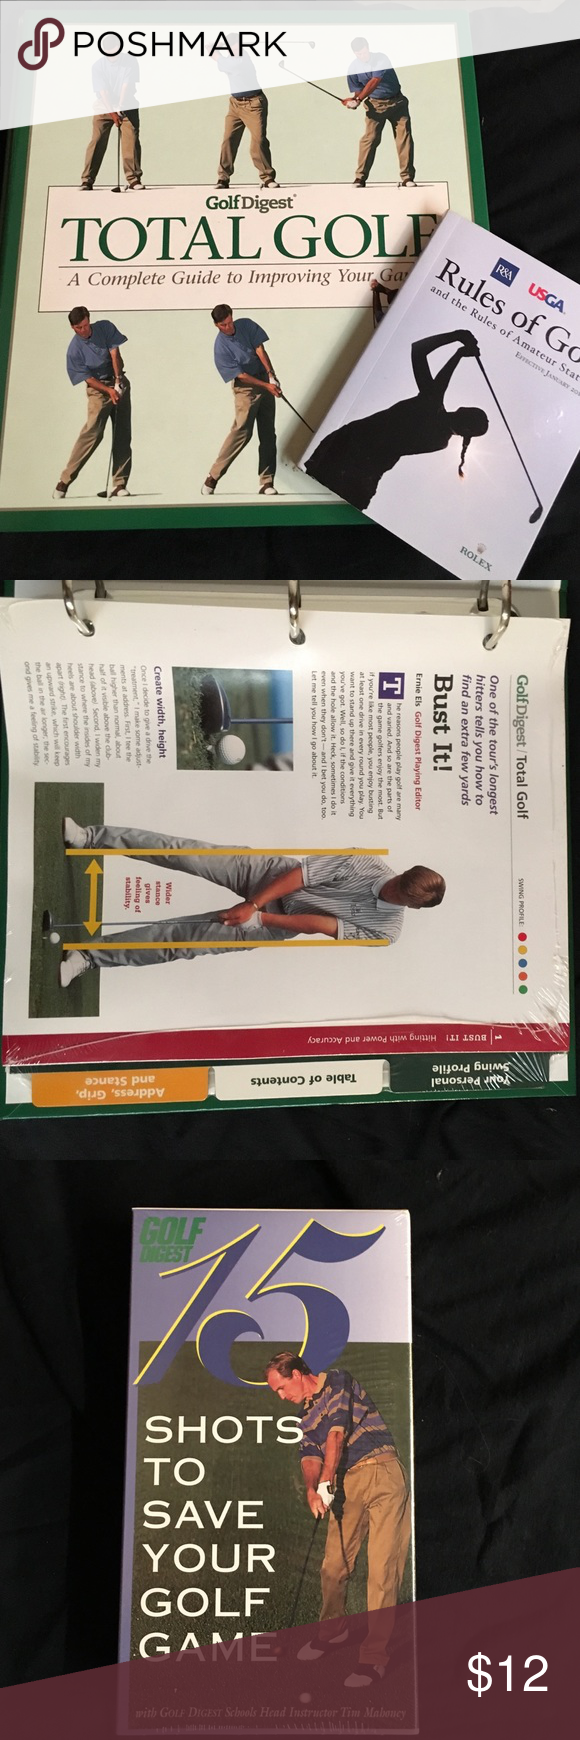 New Rules of Golf 2016, Readers Digest Total Golf Golf